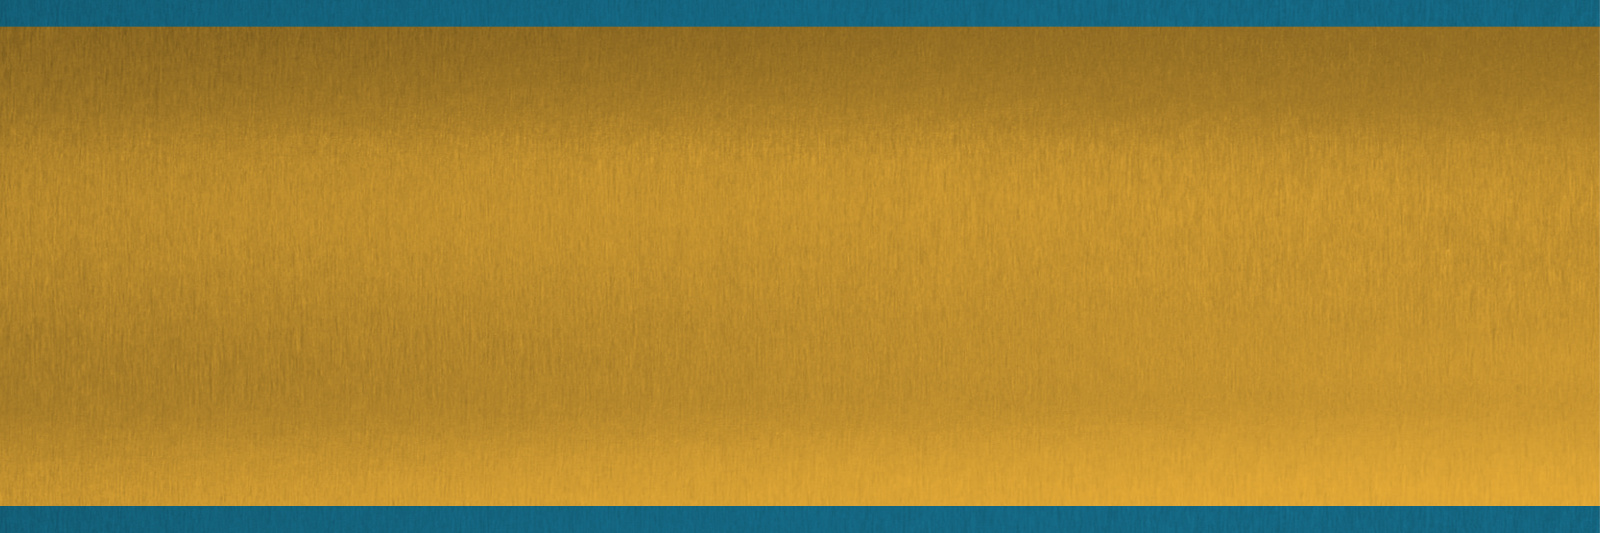 Gold background peacock top and bottom border